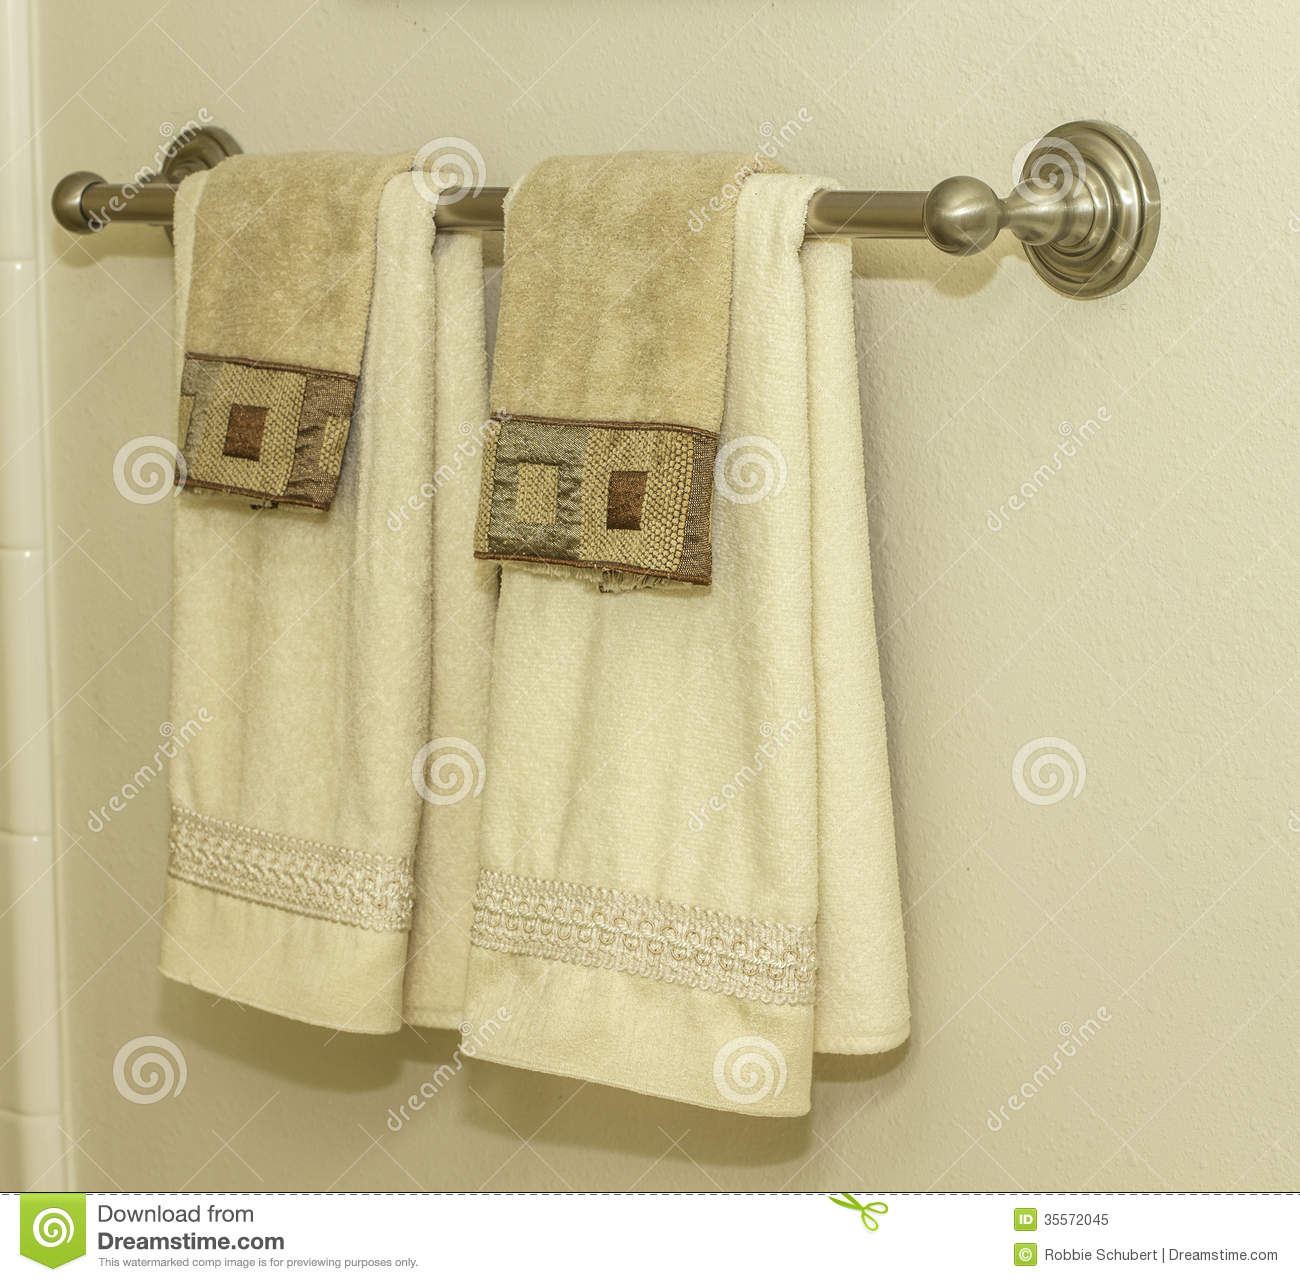 A Bathroom Towel Rack Hanging On A Wall